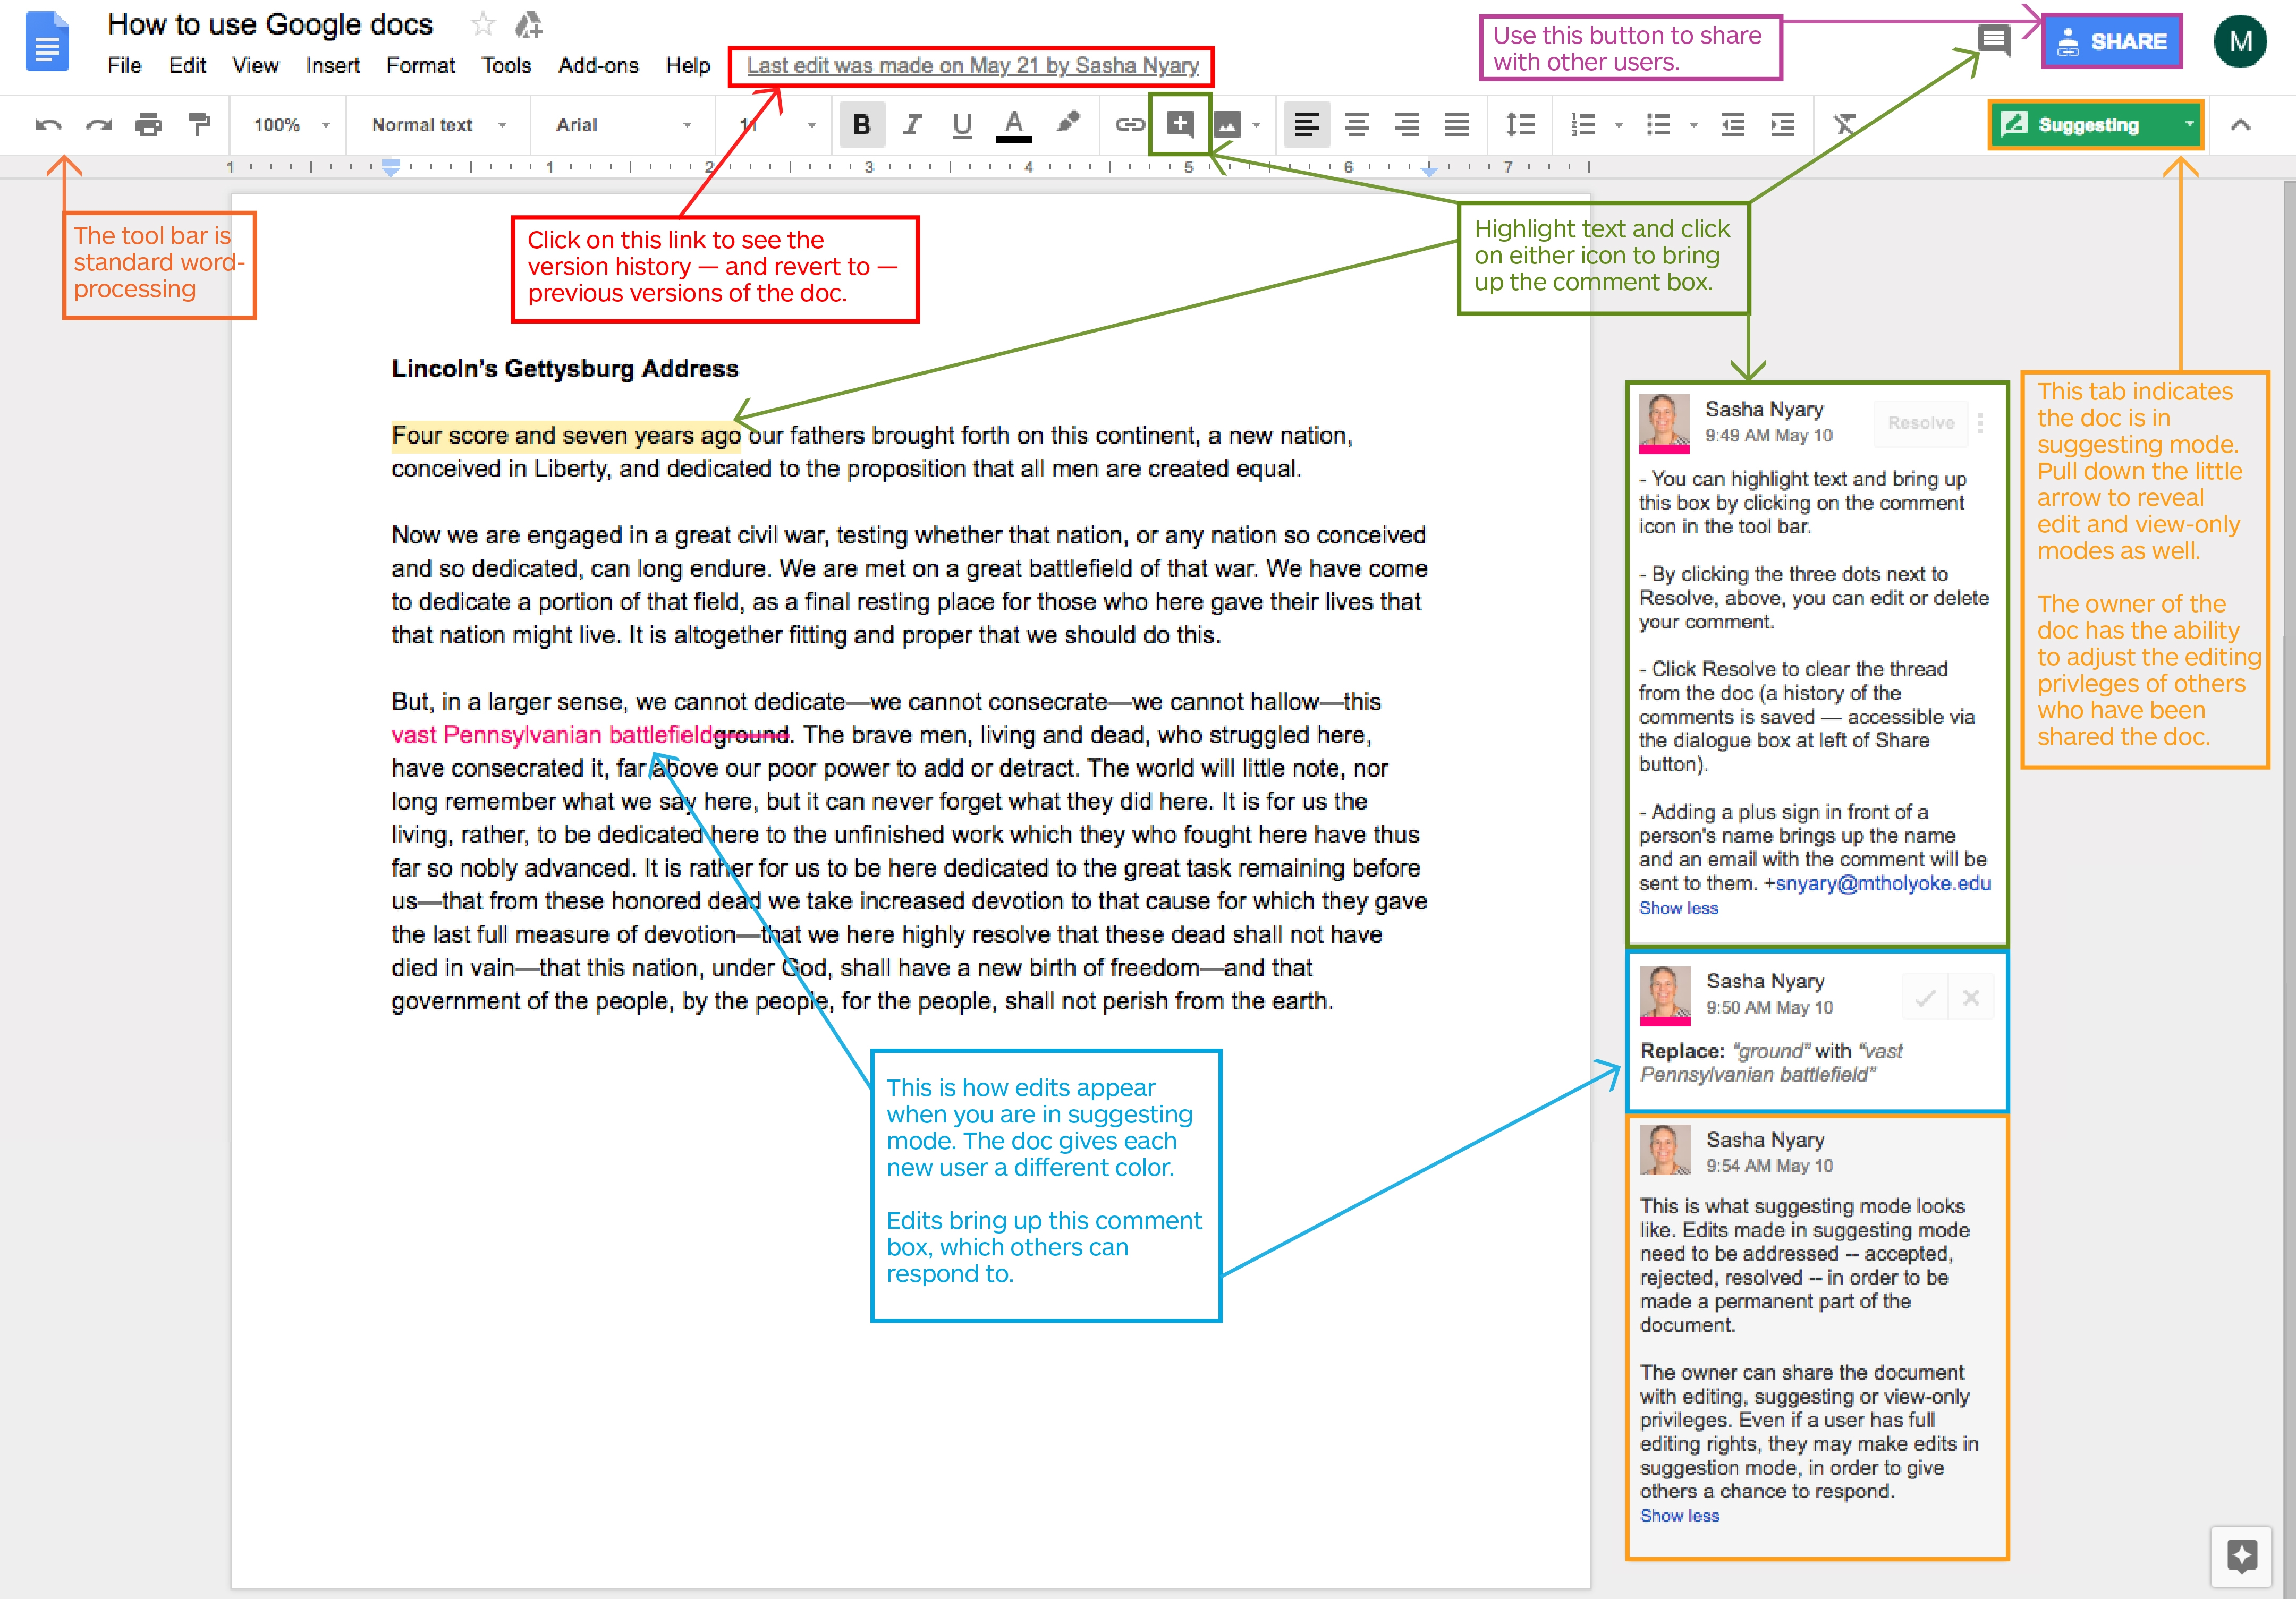 Image showing a google doc with text boxes and arrows explaing certain features